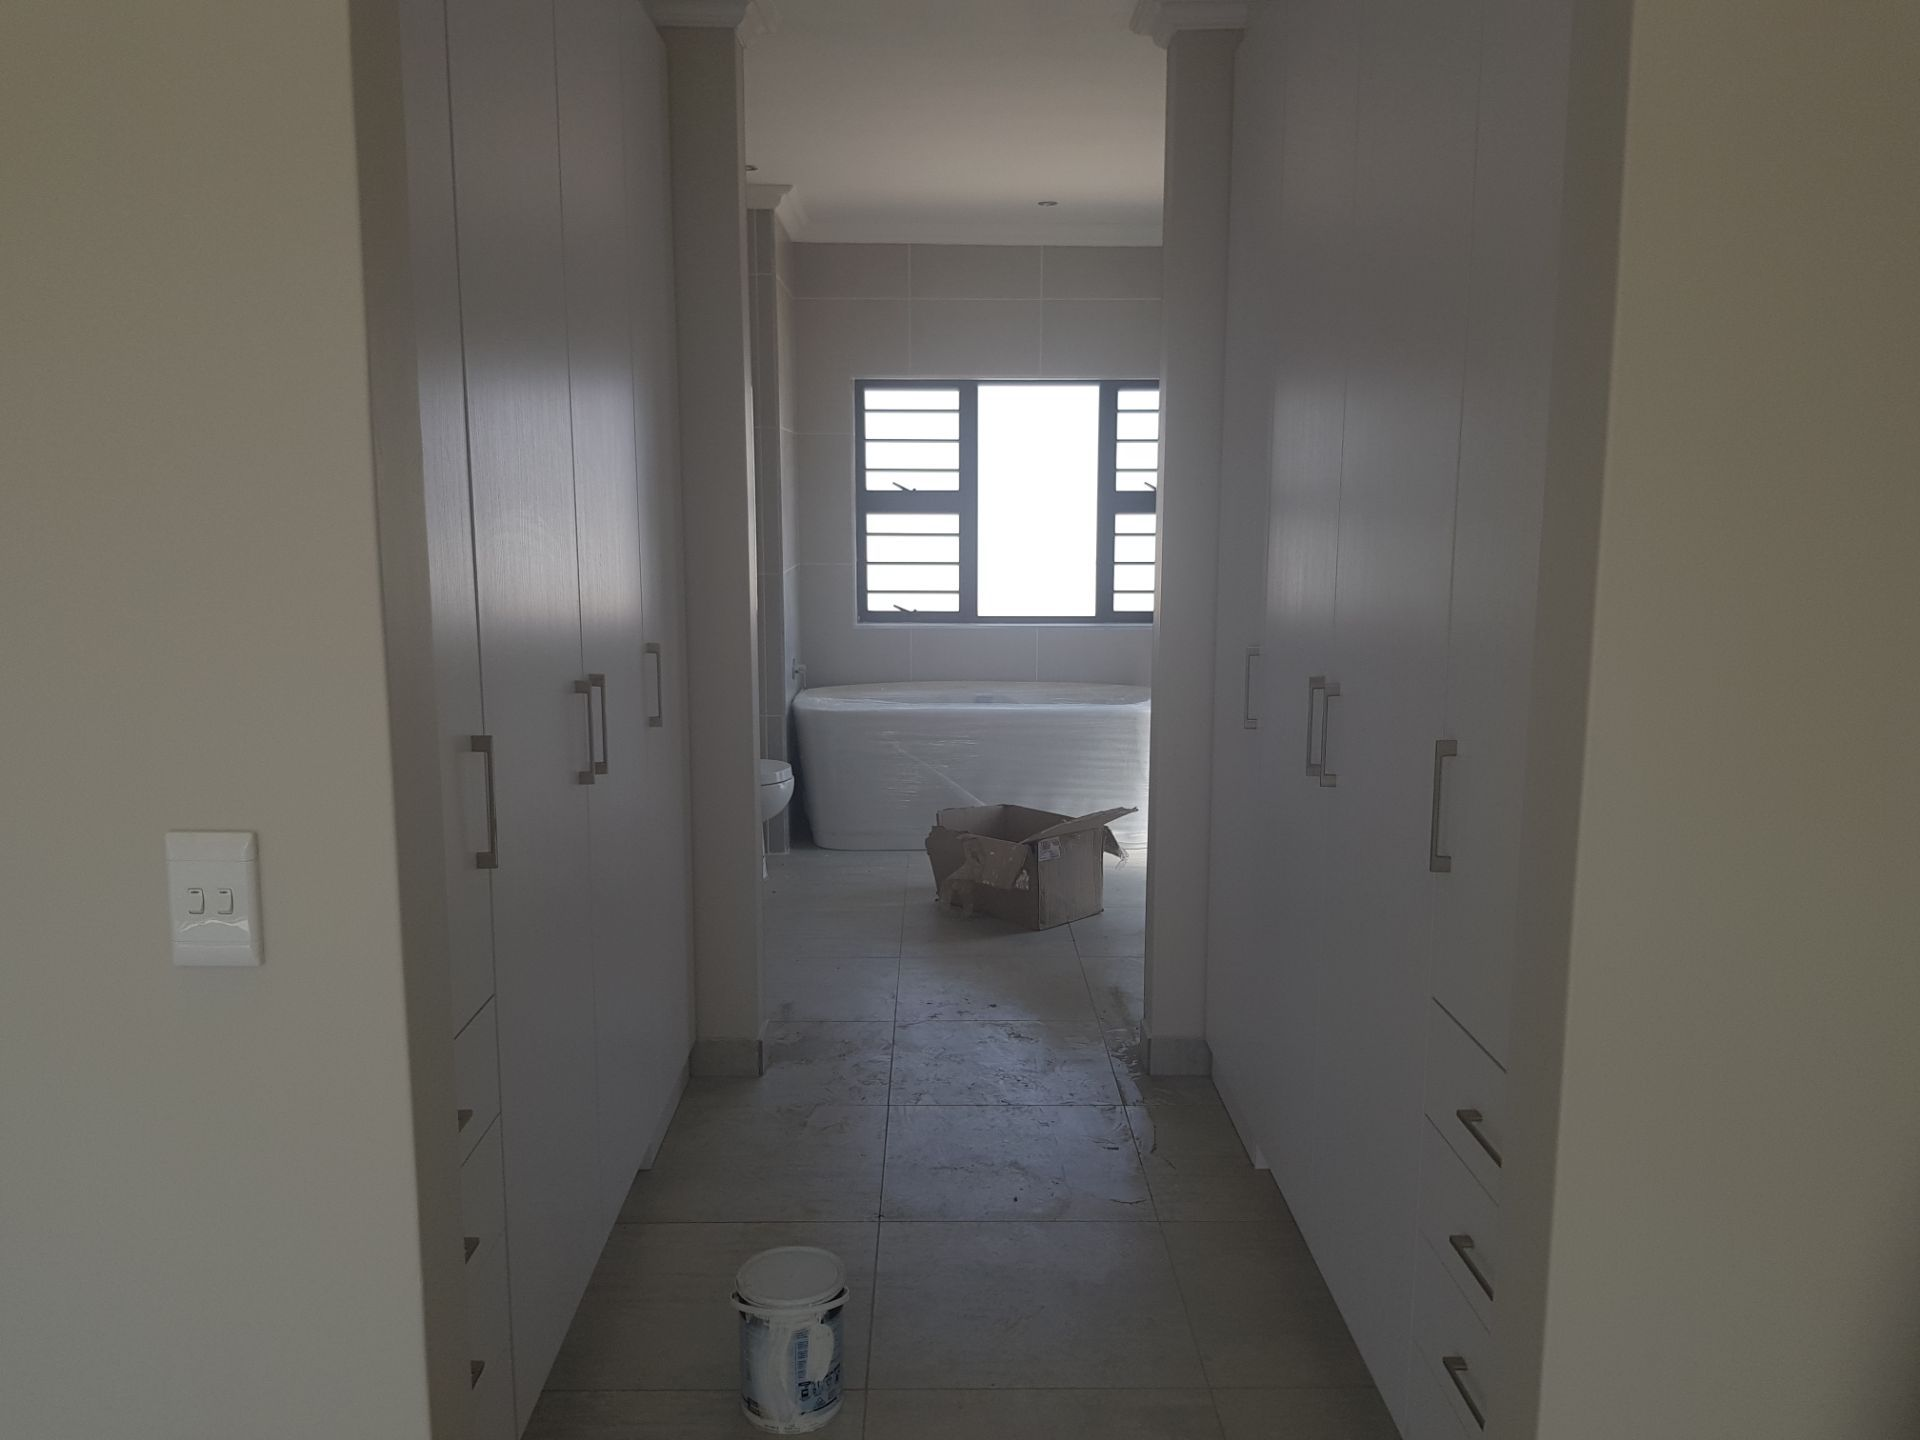 House in Lifestyle Estate - 20190920_130222.jpg